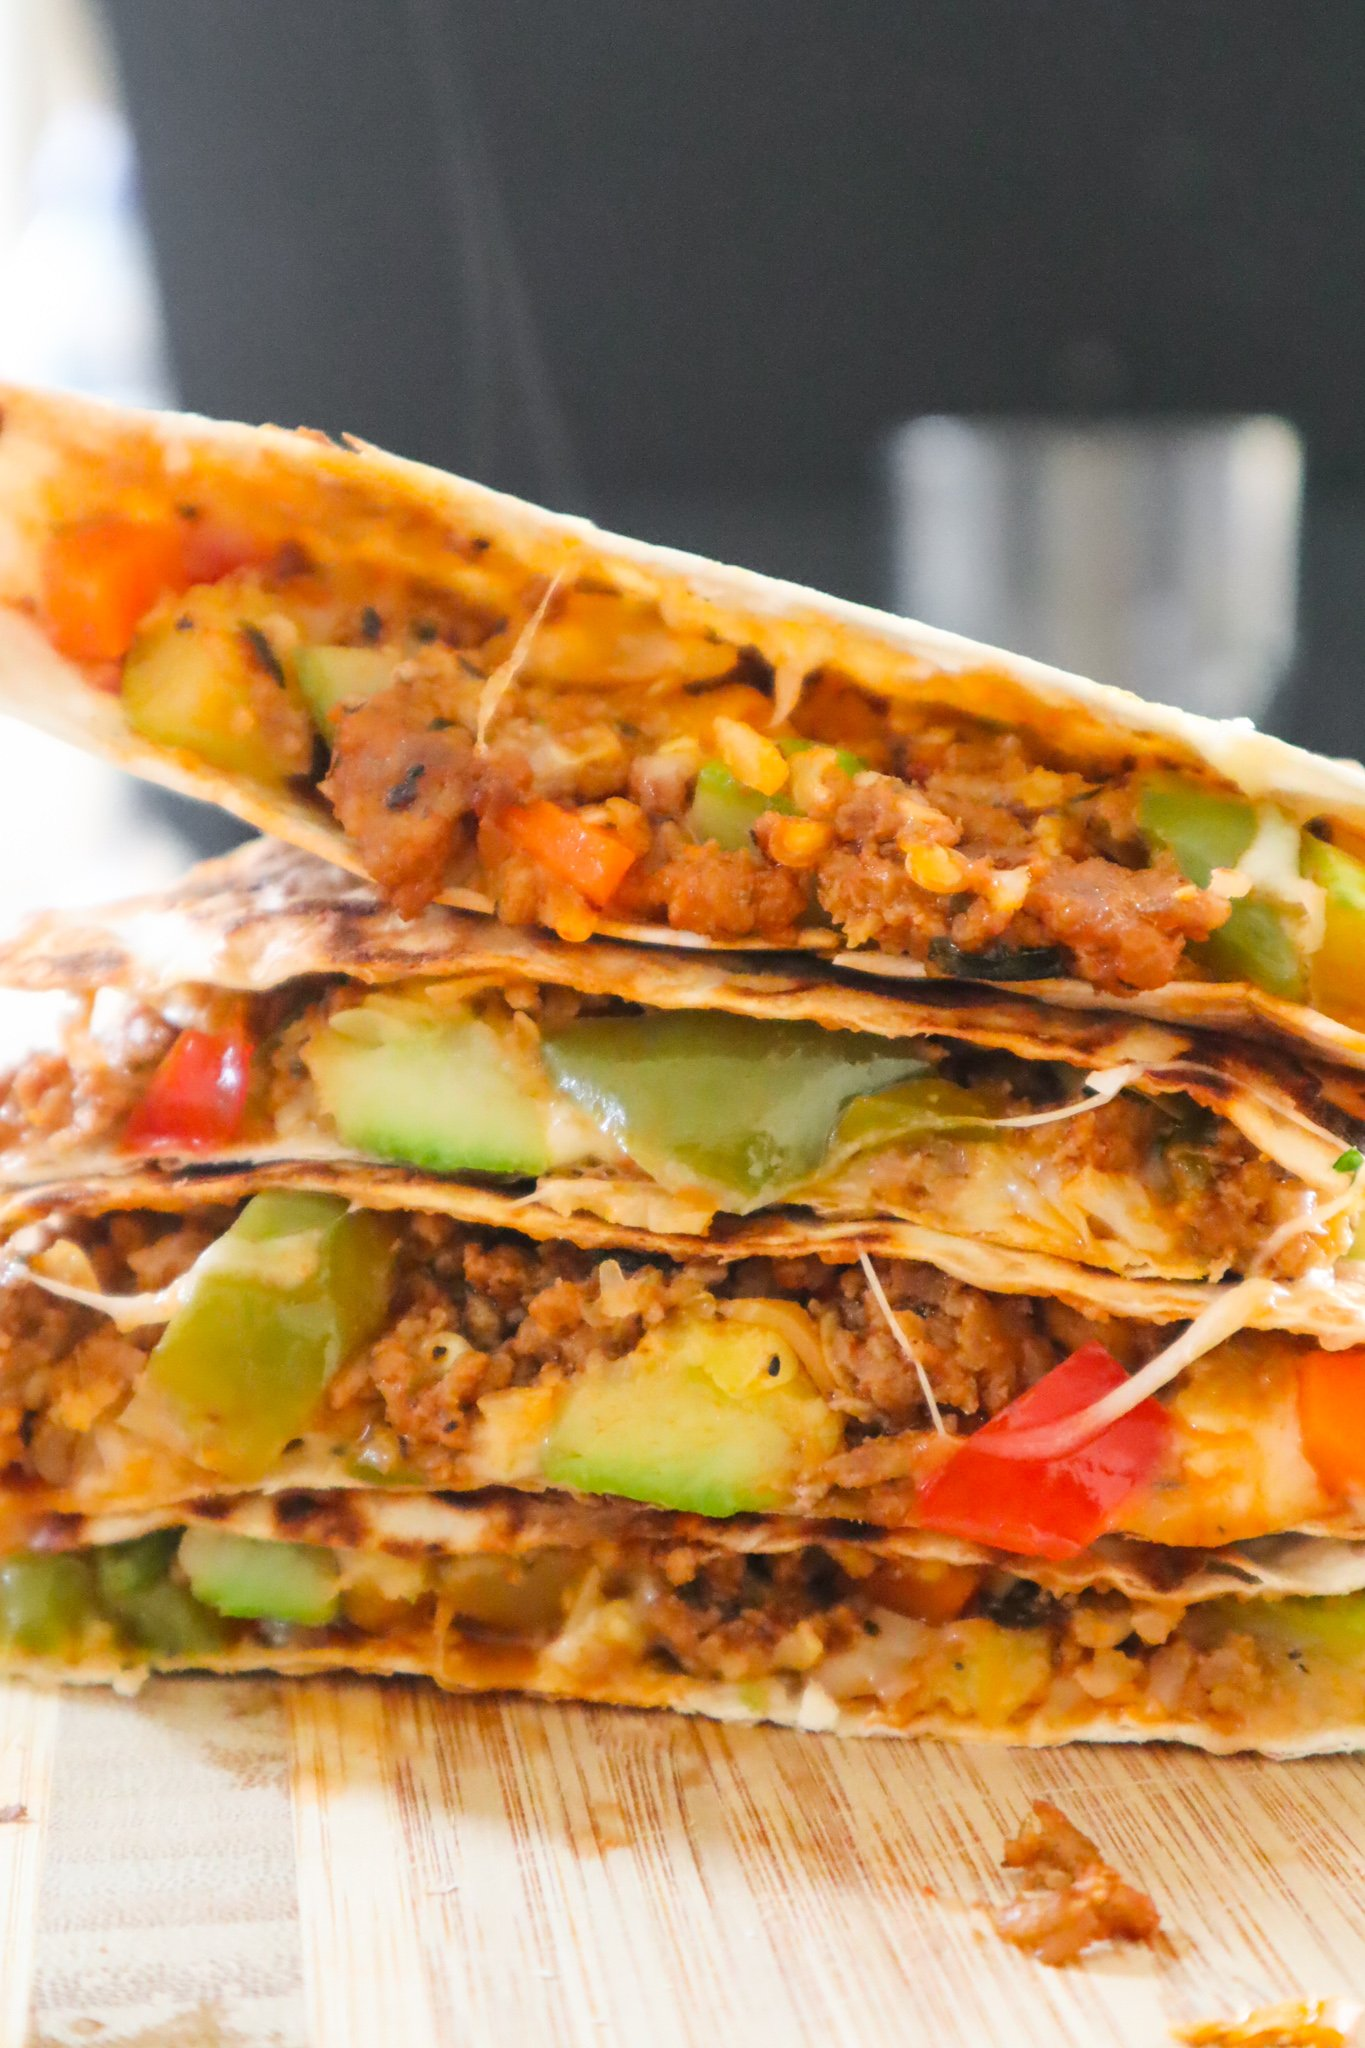 Try this easy healthy ground beef quesadilla recipe this week! It's super simple, simple ingredients, delicious, loaded with vegetables and really versatile! Plus these beef quesadillas are ready in about 20-30 minutes and can be a an easy meal prep recipe too!